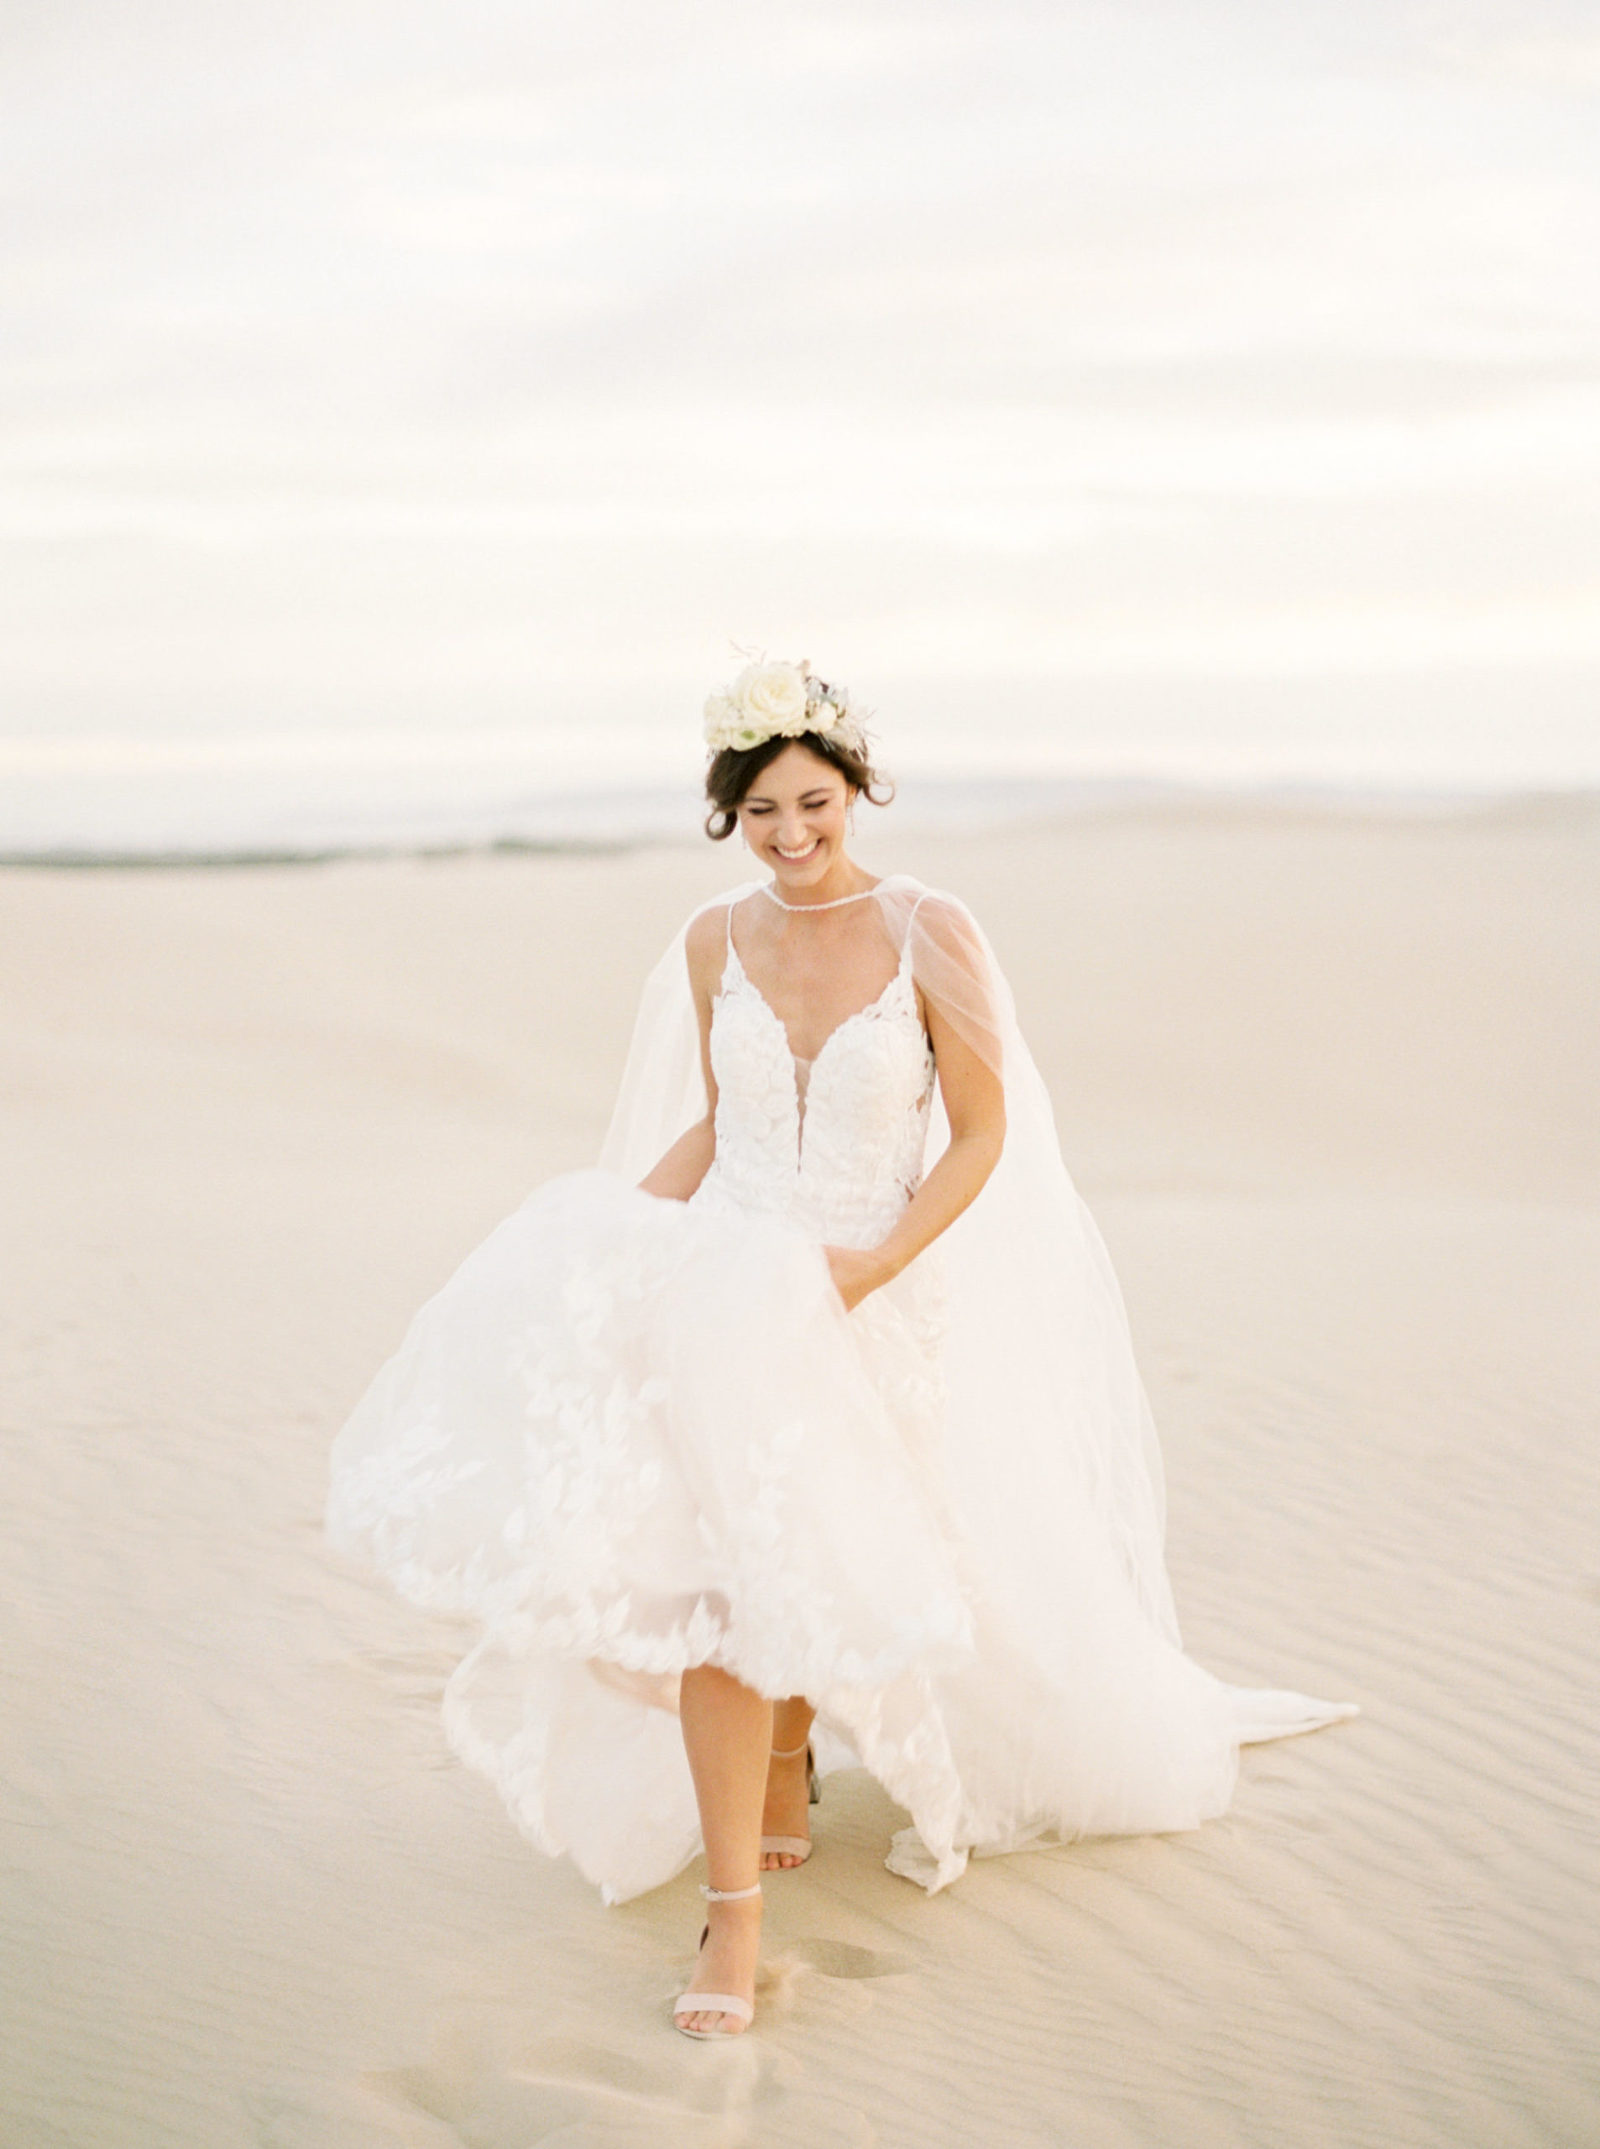 Film Bridal Photo in Dunes